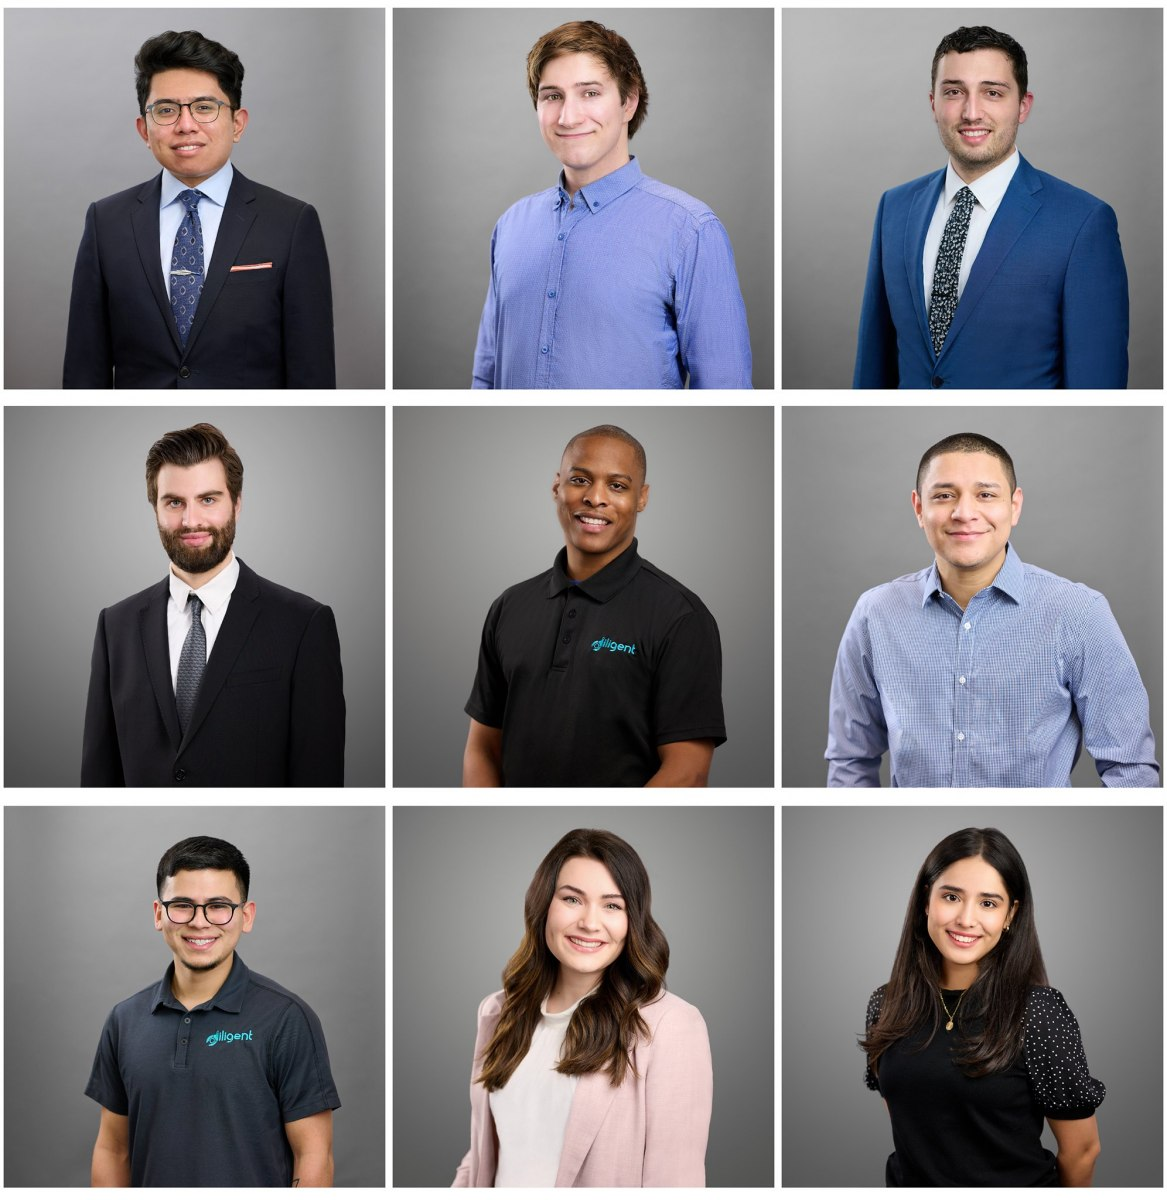 Headshots of the entire office team